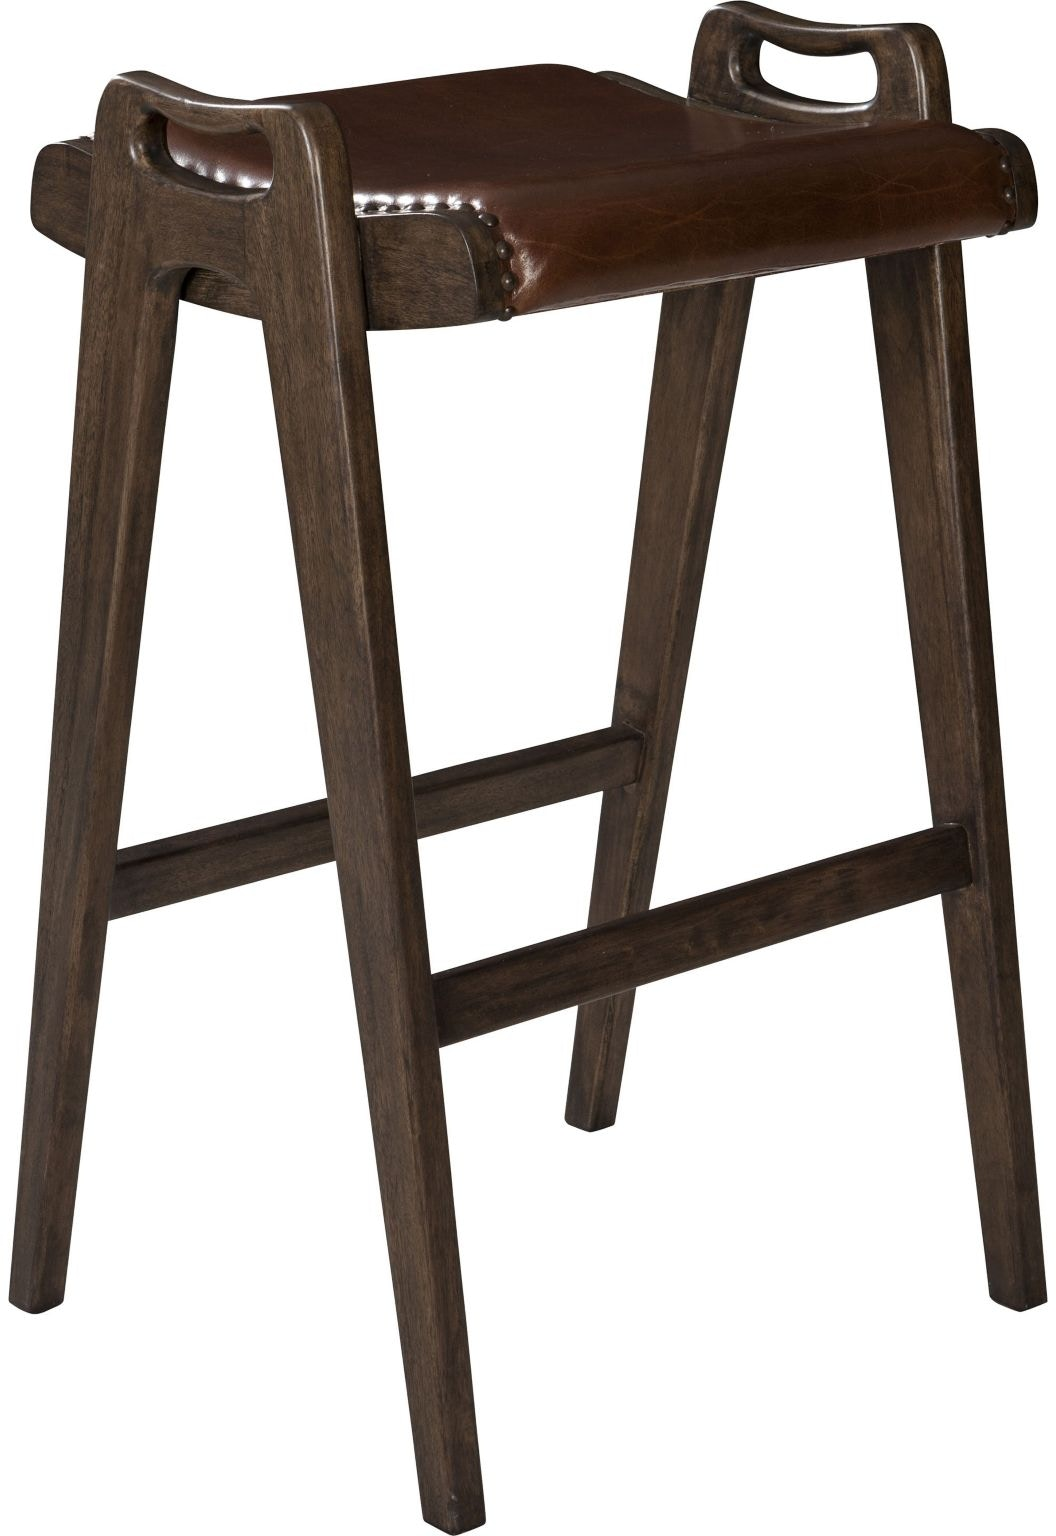 Thomasville Bar and Game Room Tollis Wooden Bar Stool  : 85821 909 from www.pennfurniture.com size 1024 x 768 jpeg 30kB